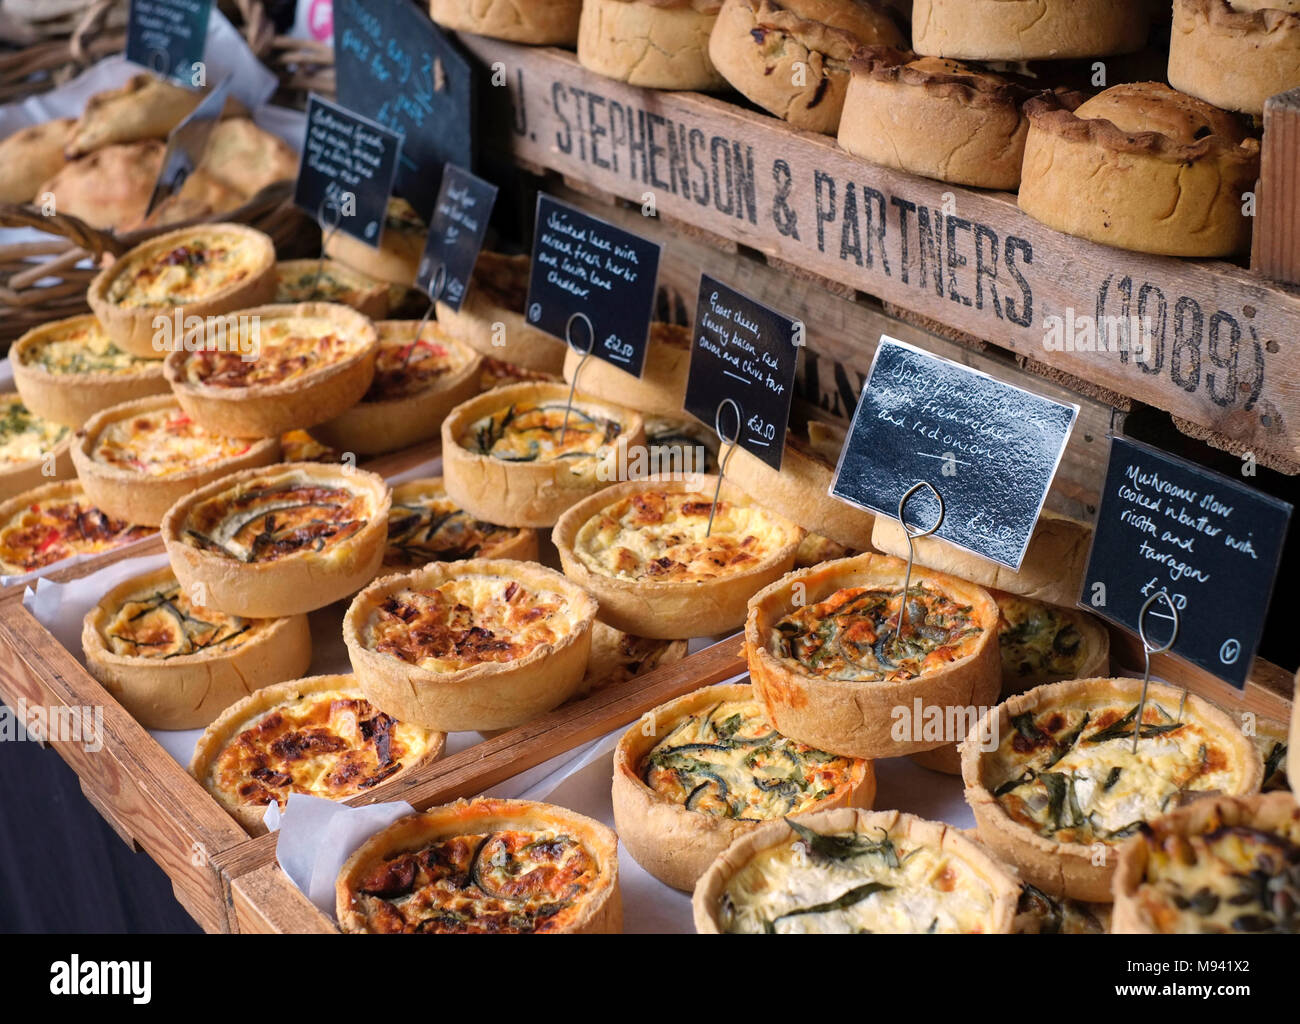 Quiches made by Snowdrop Cottage, on sale at farmers market at Whiteladies Road, Bristol, UK - Stock Image